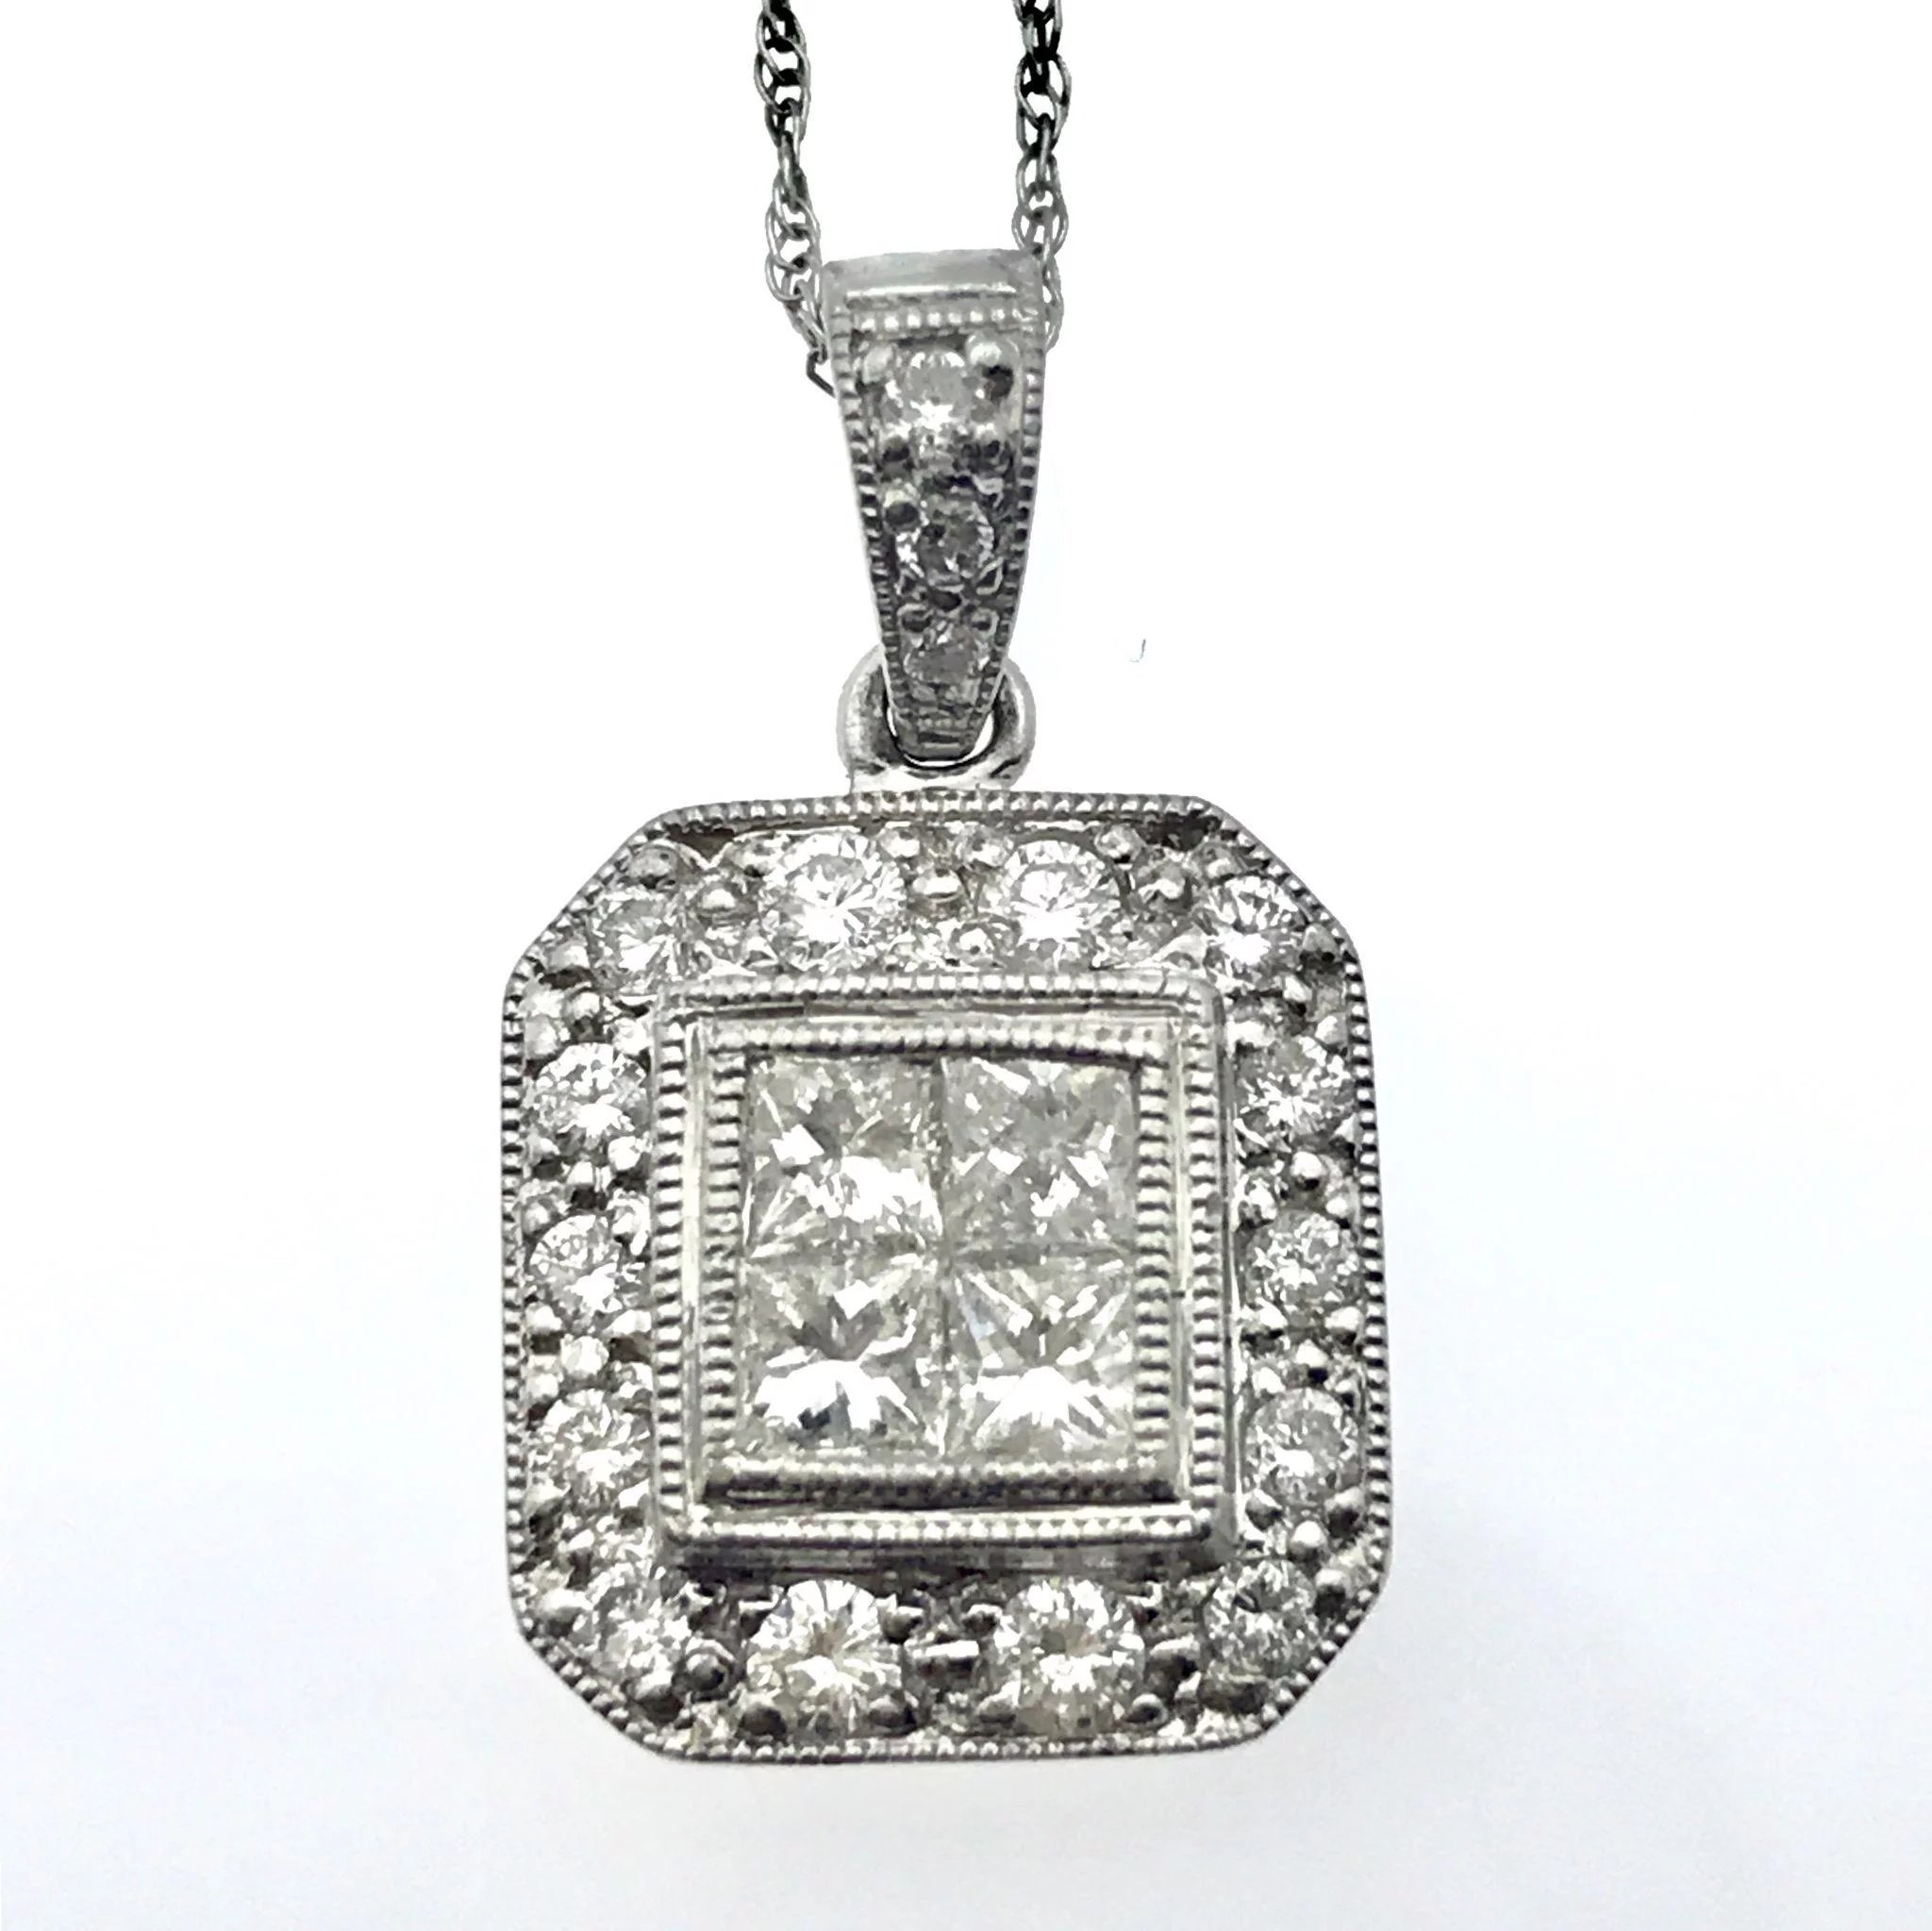 diamond necklace pendant platinum jewelry necklaces estate fullsizerender